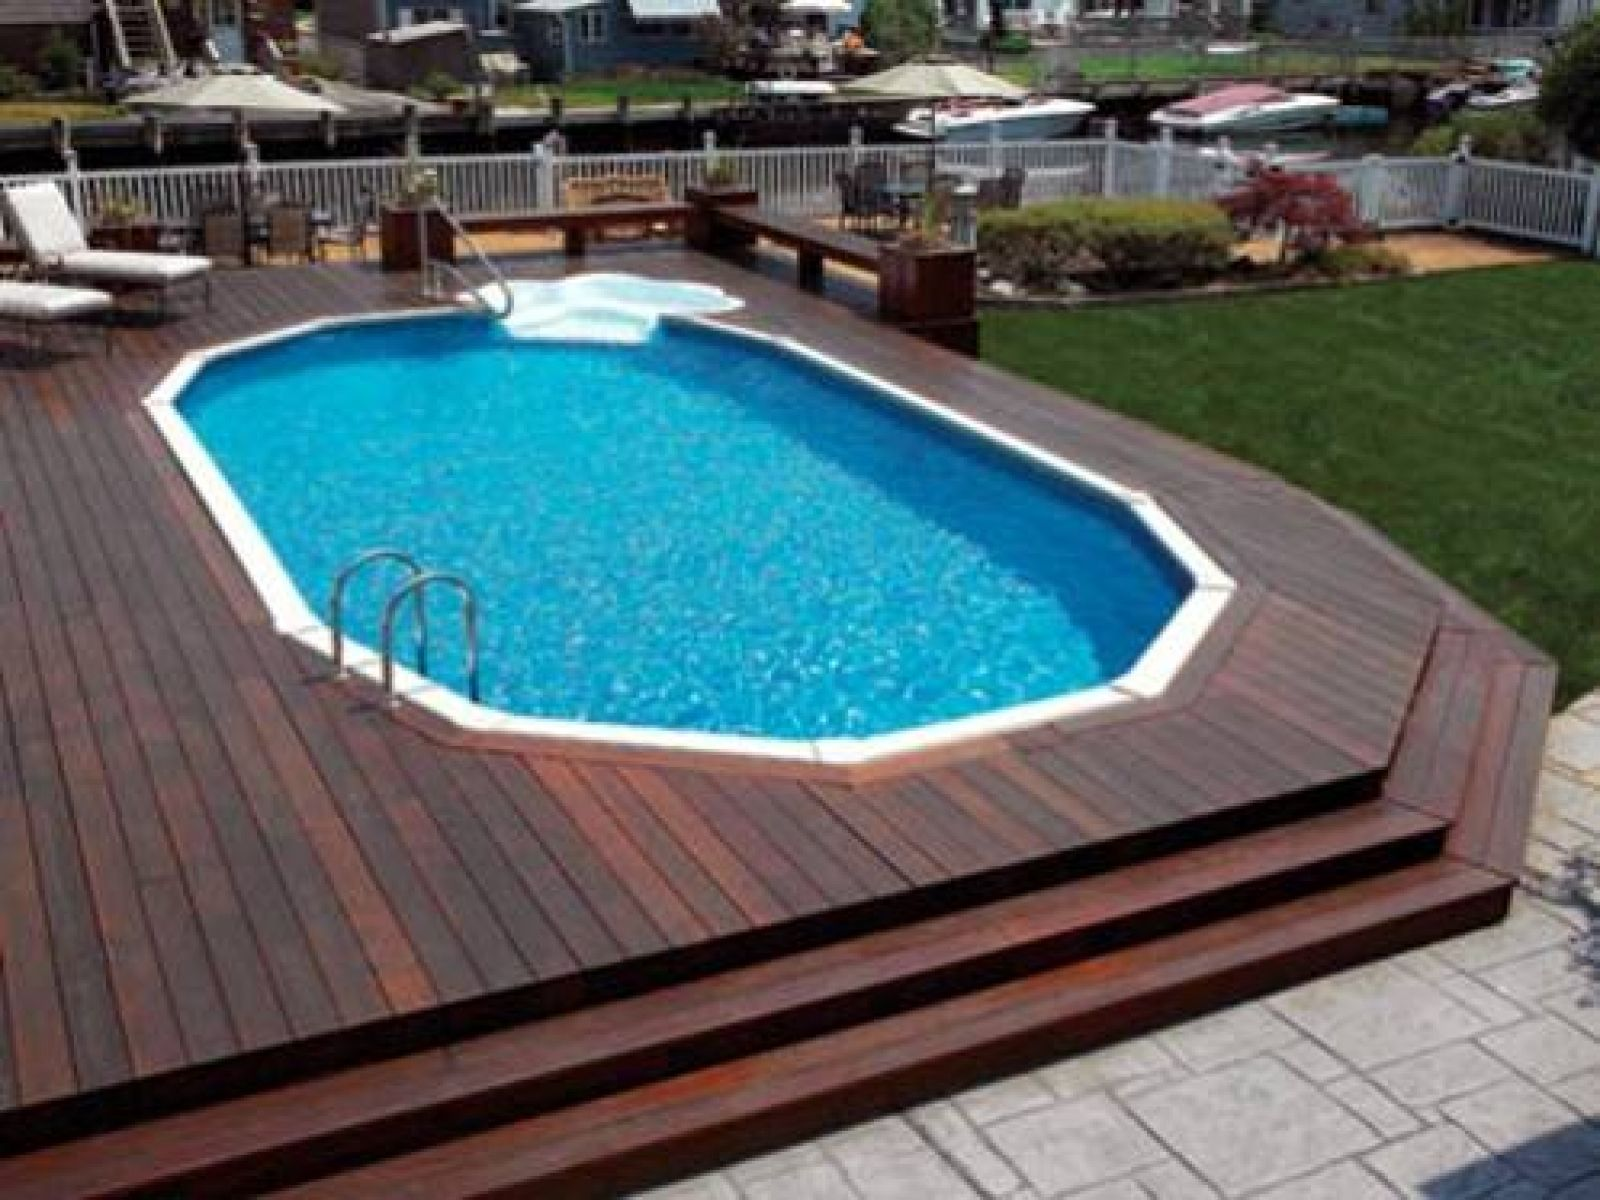 amazing deck designs for above ground swimming pools. Amazing Above Ground Pool Ideas For Relax Time  Amusing Backyard Landscape With Wood Decks And